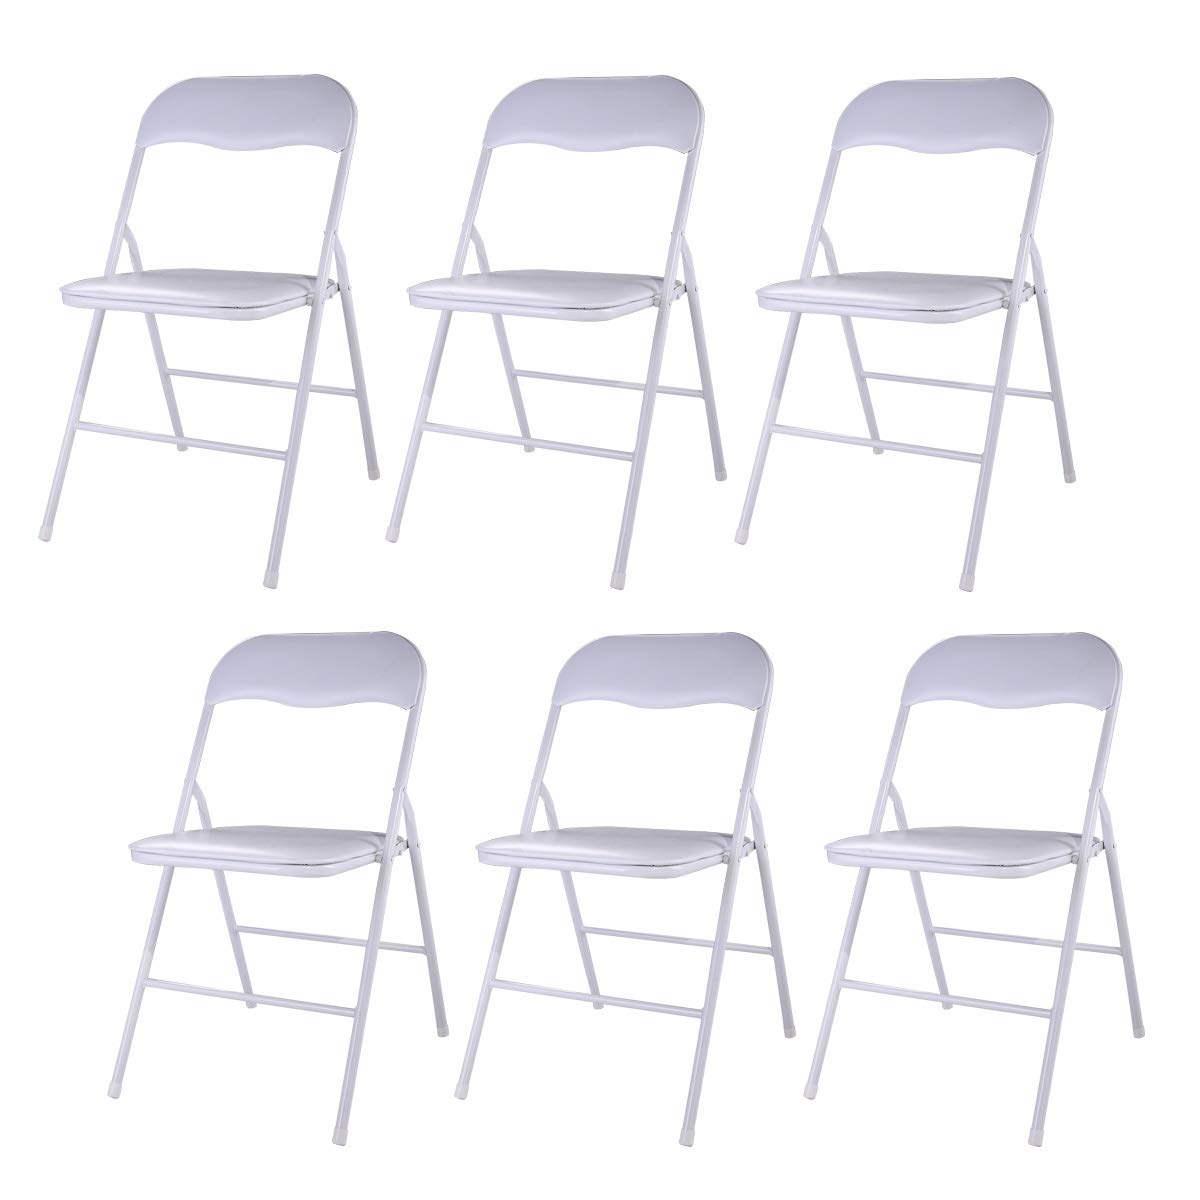 JAXPETY New Set of 6 PCS Plastic Folding Chairs Wedding Party Event Chair Commercial White w/Soft Cushion by JAXPETY